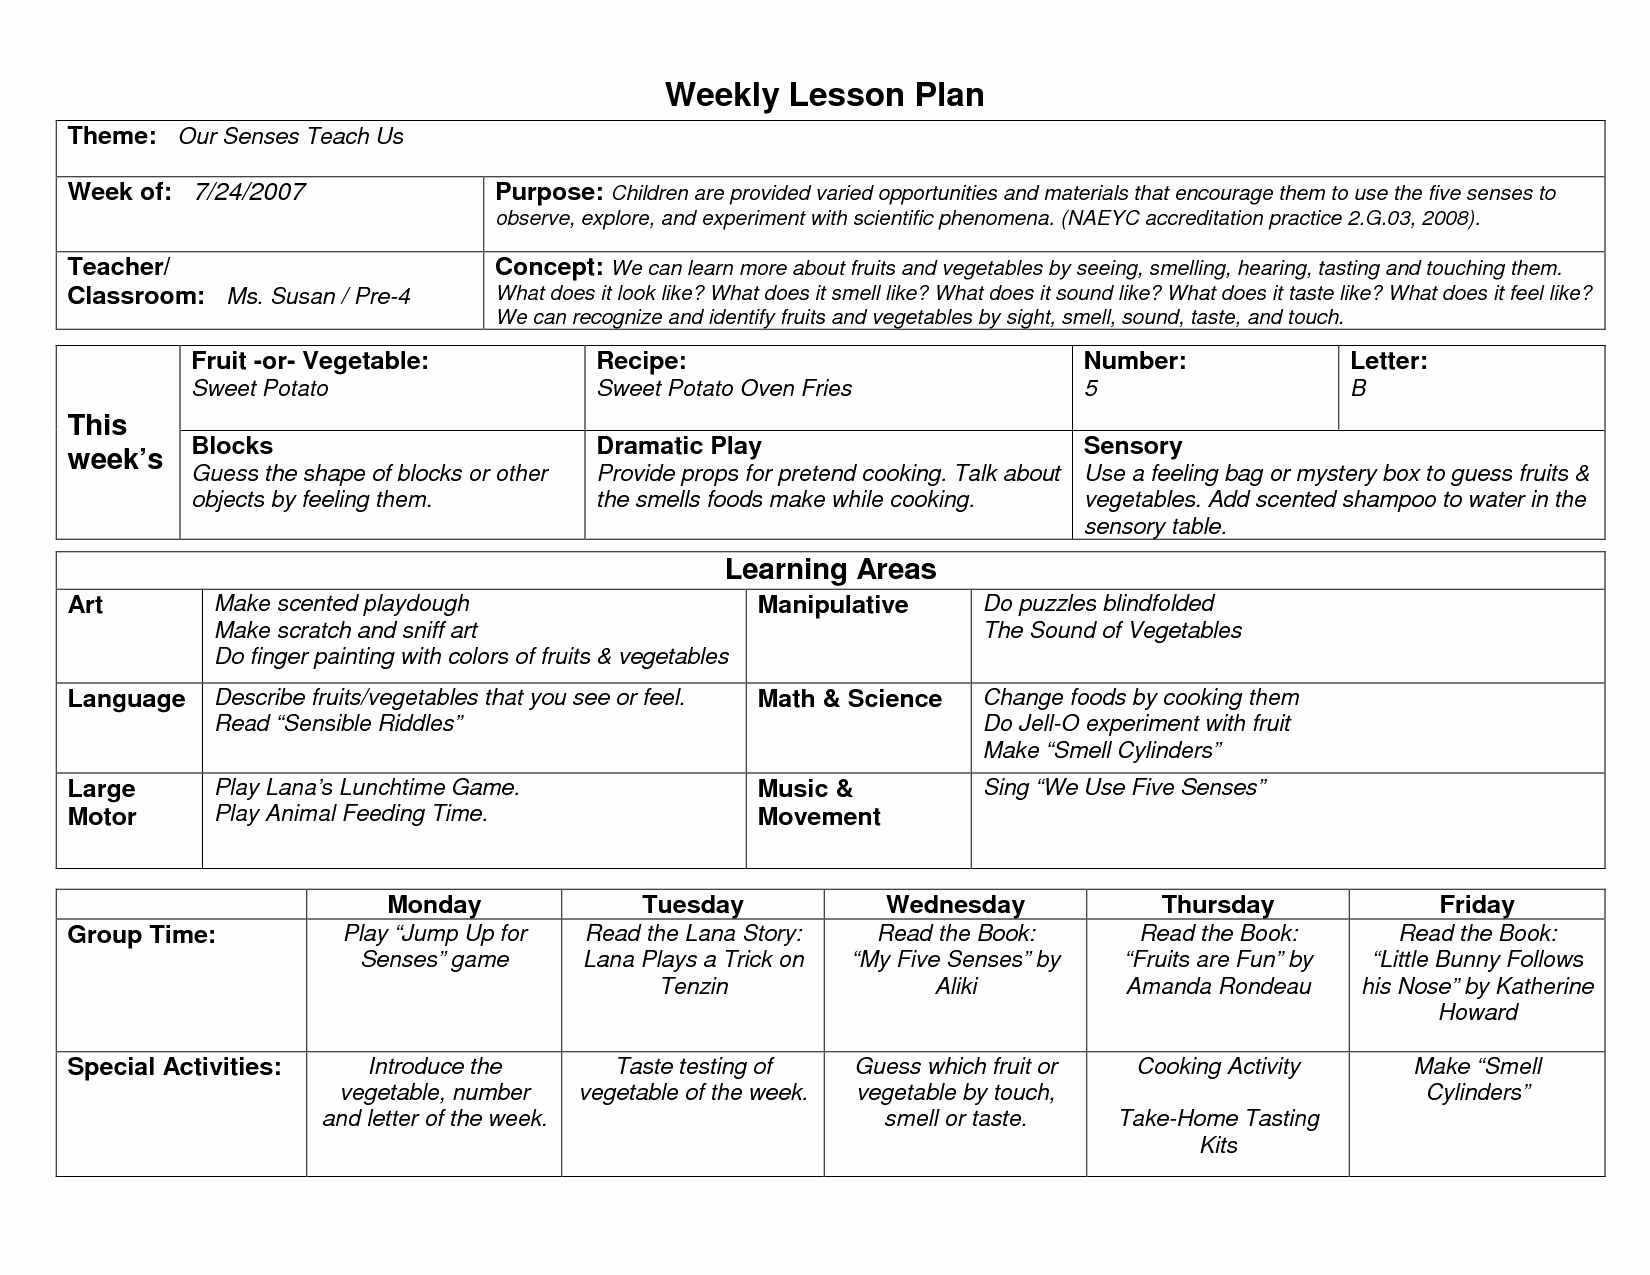 Free Weekly Lesson Plan Template Fresh Naeyc Lesson Plan Template for Preschool